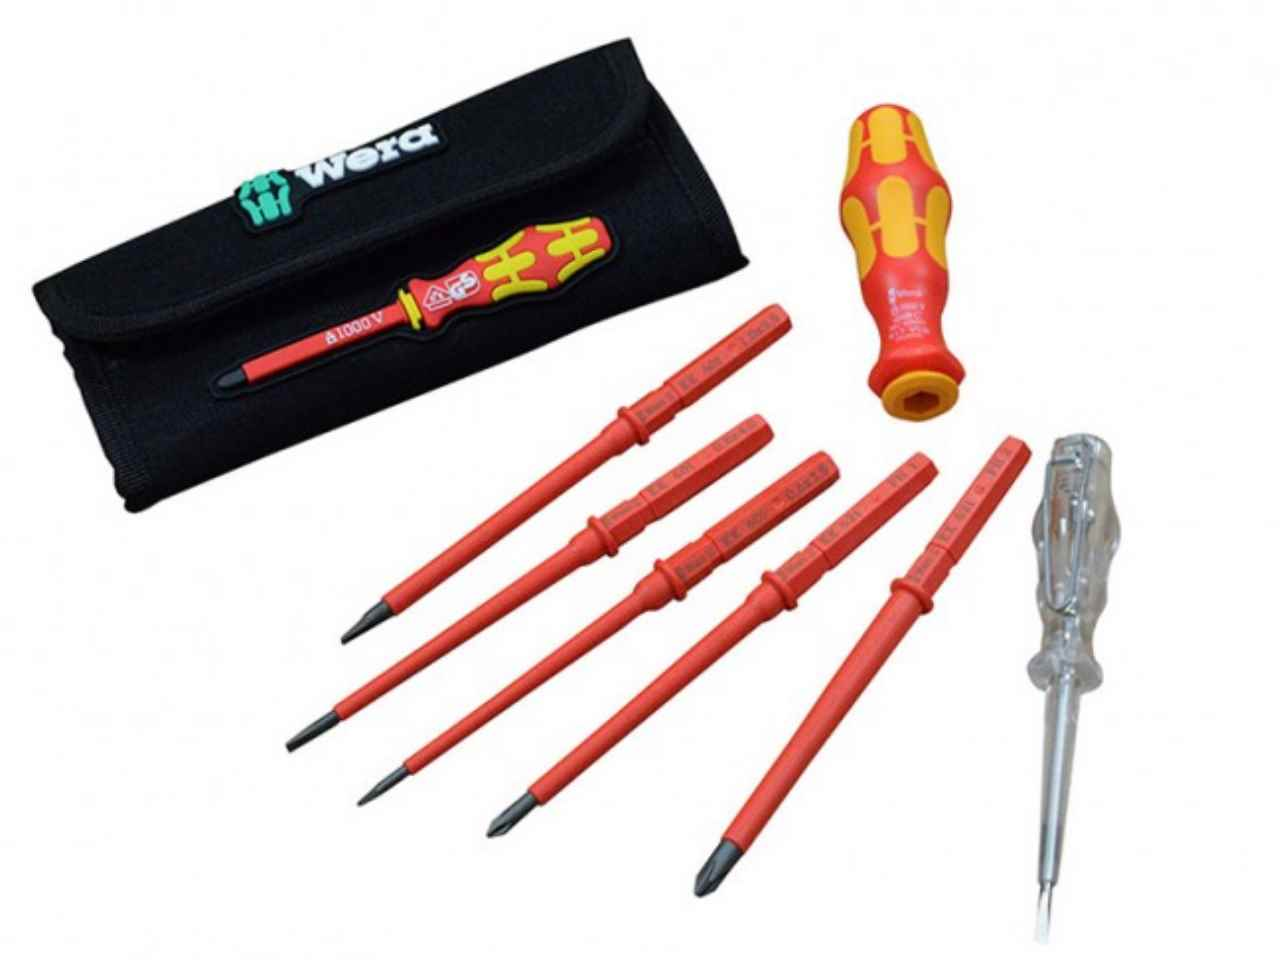 wera xms16vde7 vde interchangeable blade screwdriver set 7 piece. Black Bedroom Furniture Sets. Home Design Ideas